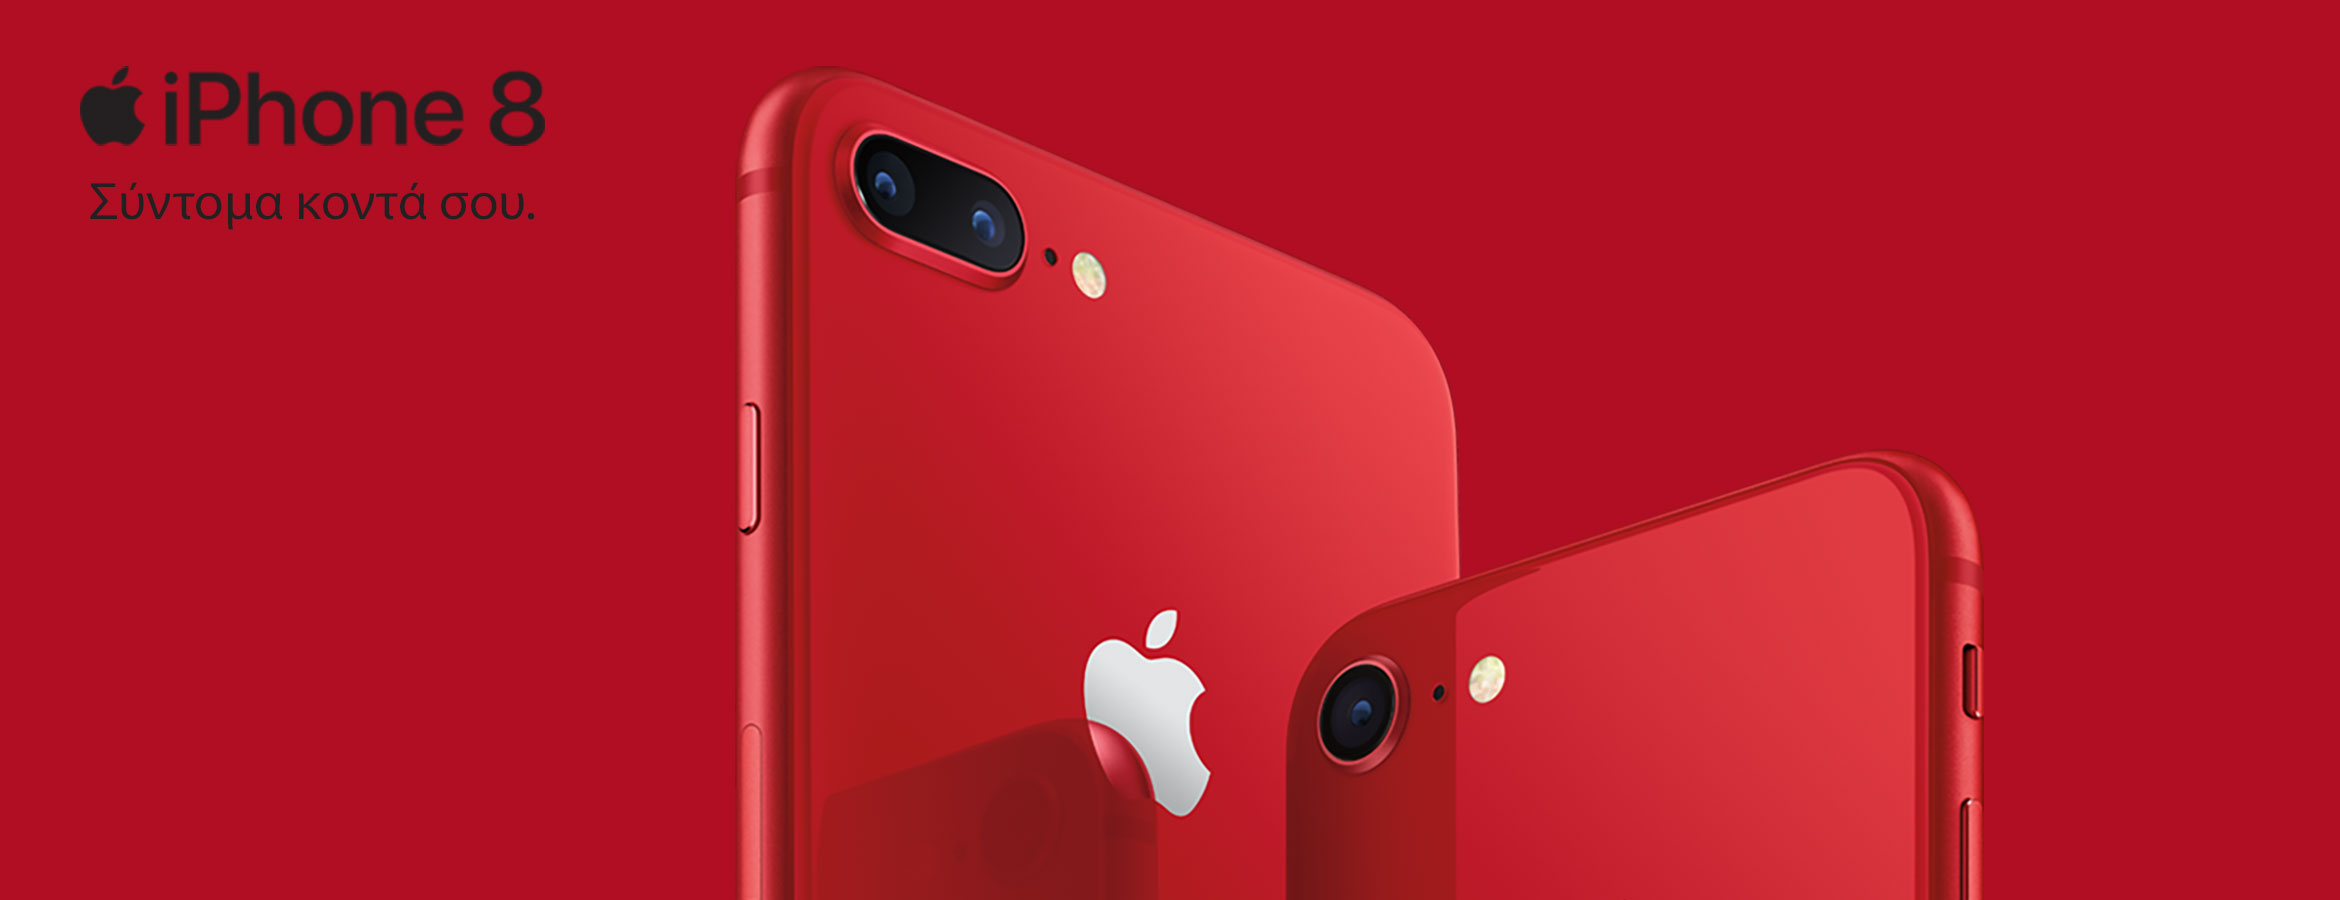 iPhone_8_ProductRED